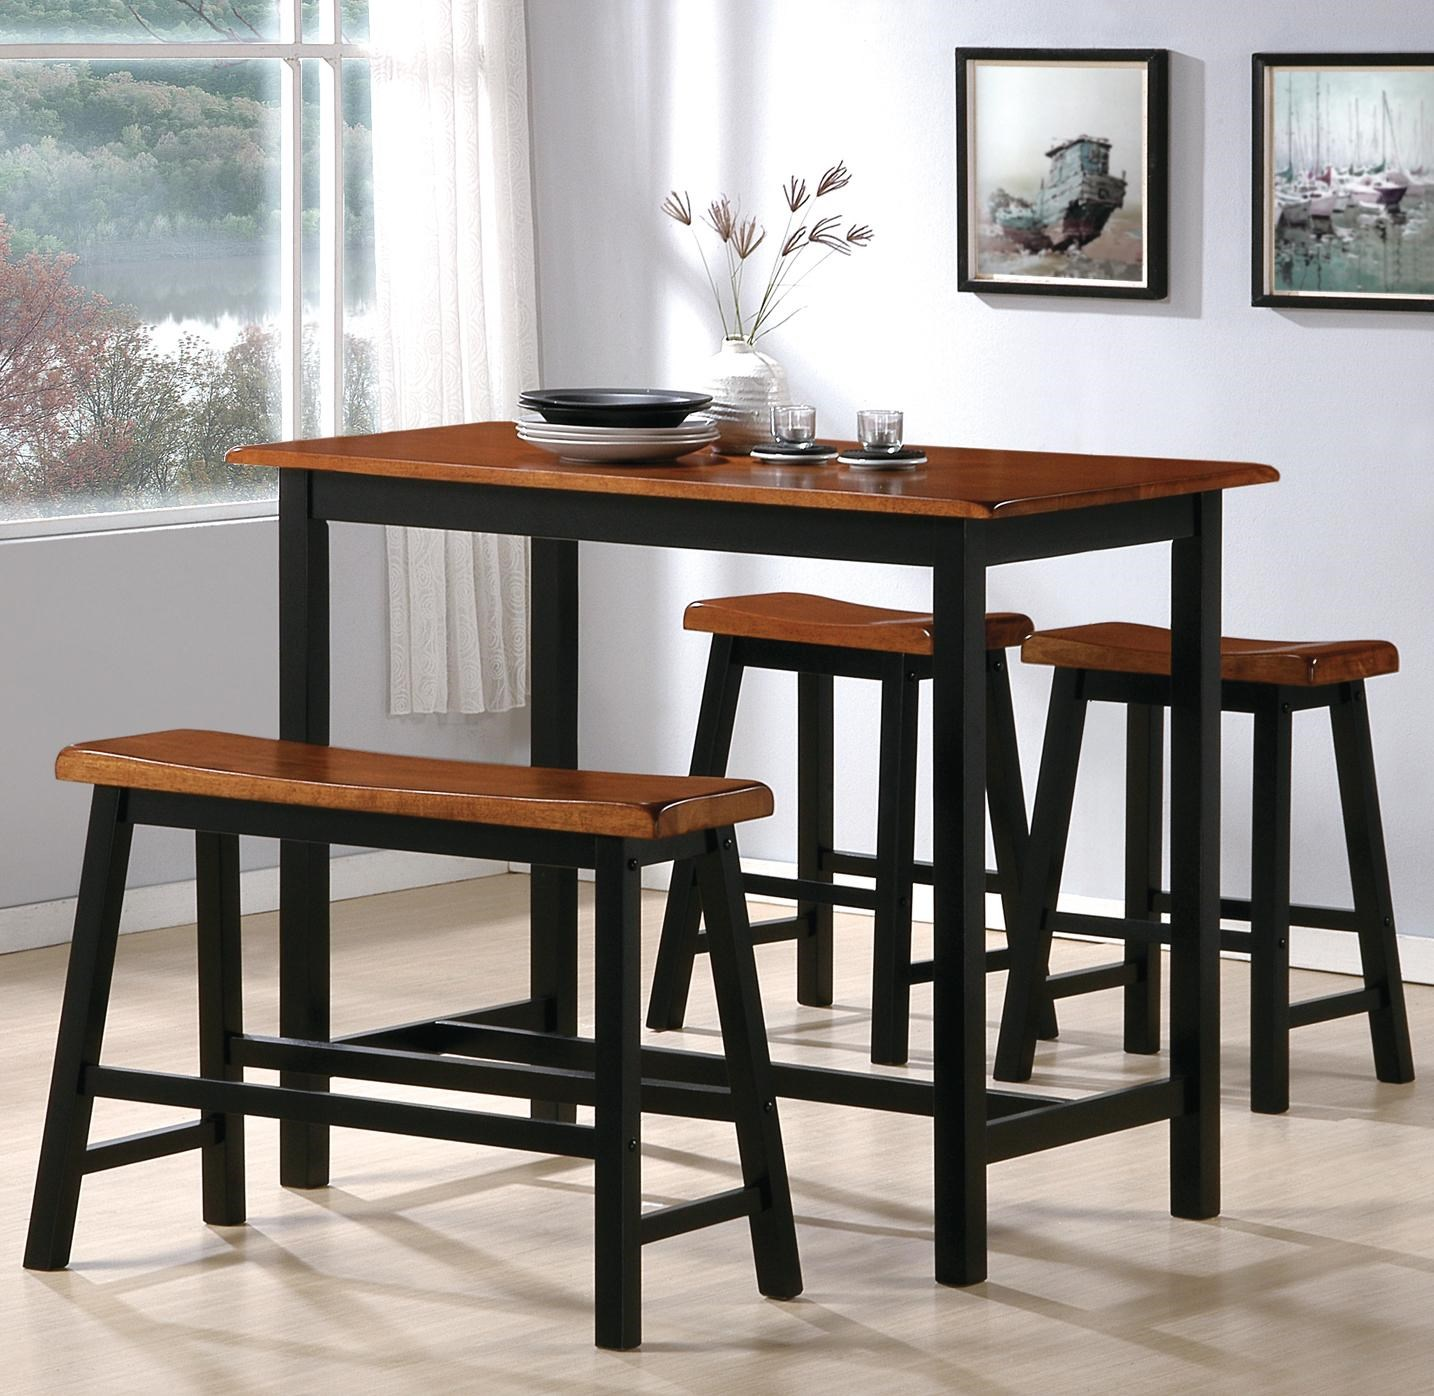 Crown Mark Tyler 4 Piece Counter Height Table Set with Chairs and Bench & Crown Mark Tyler 4 Piece Counter Height Table Set with Chairs and ...